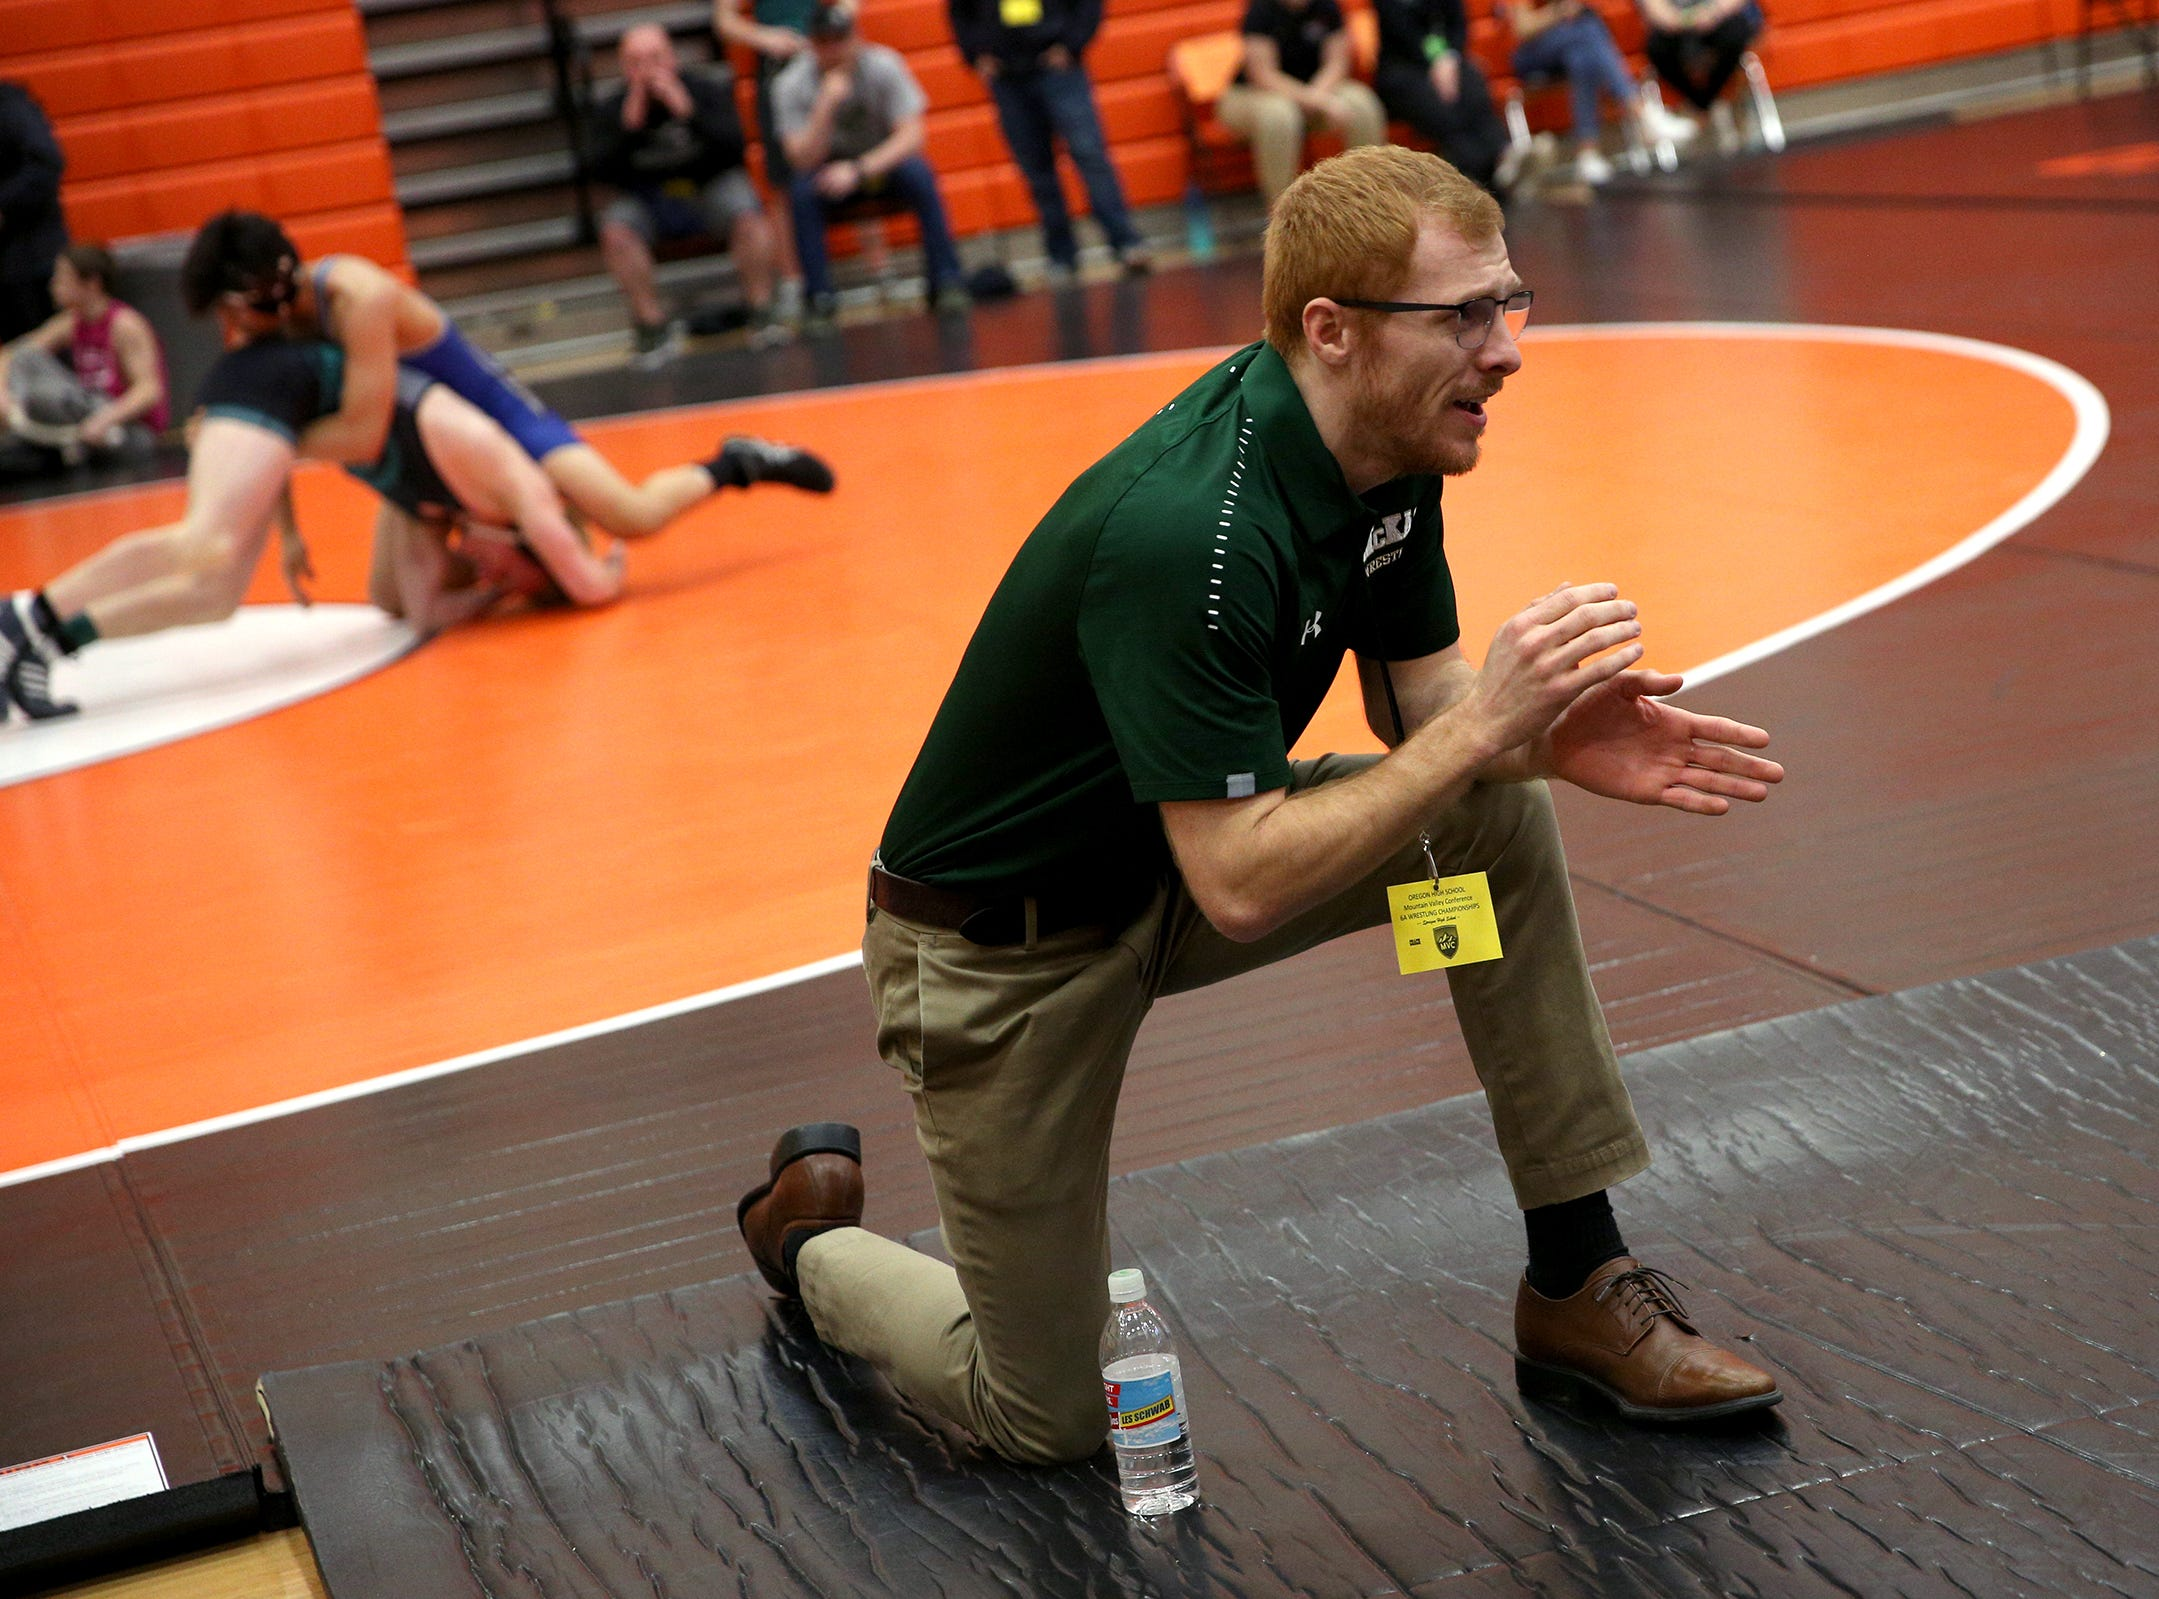 McKay High School head wrestling coach Eric Harder calls out to one of his wrestlers during the Mountain Valley Conference district wrestling tournament at Sprague High School in Salem on Friday, Feb. 15, 2019.